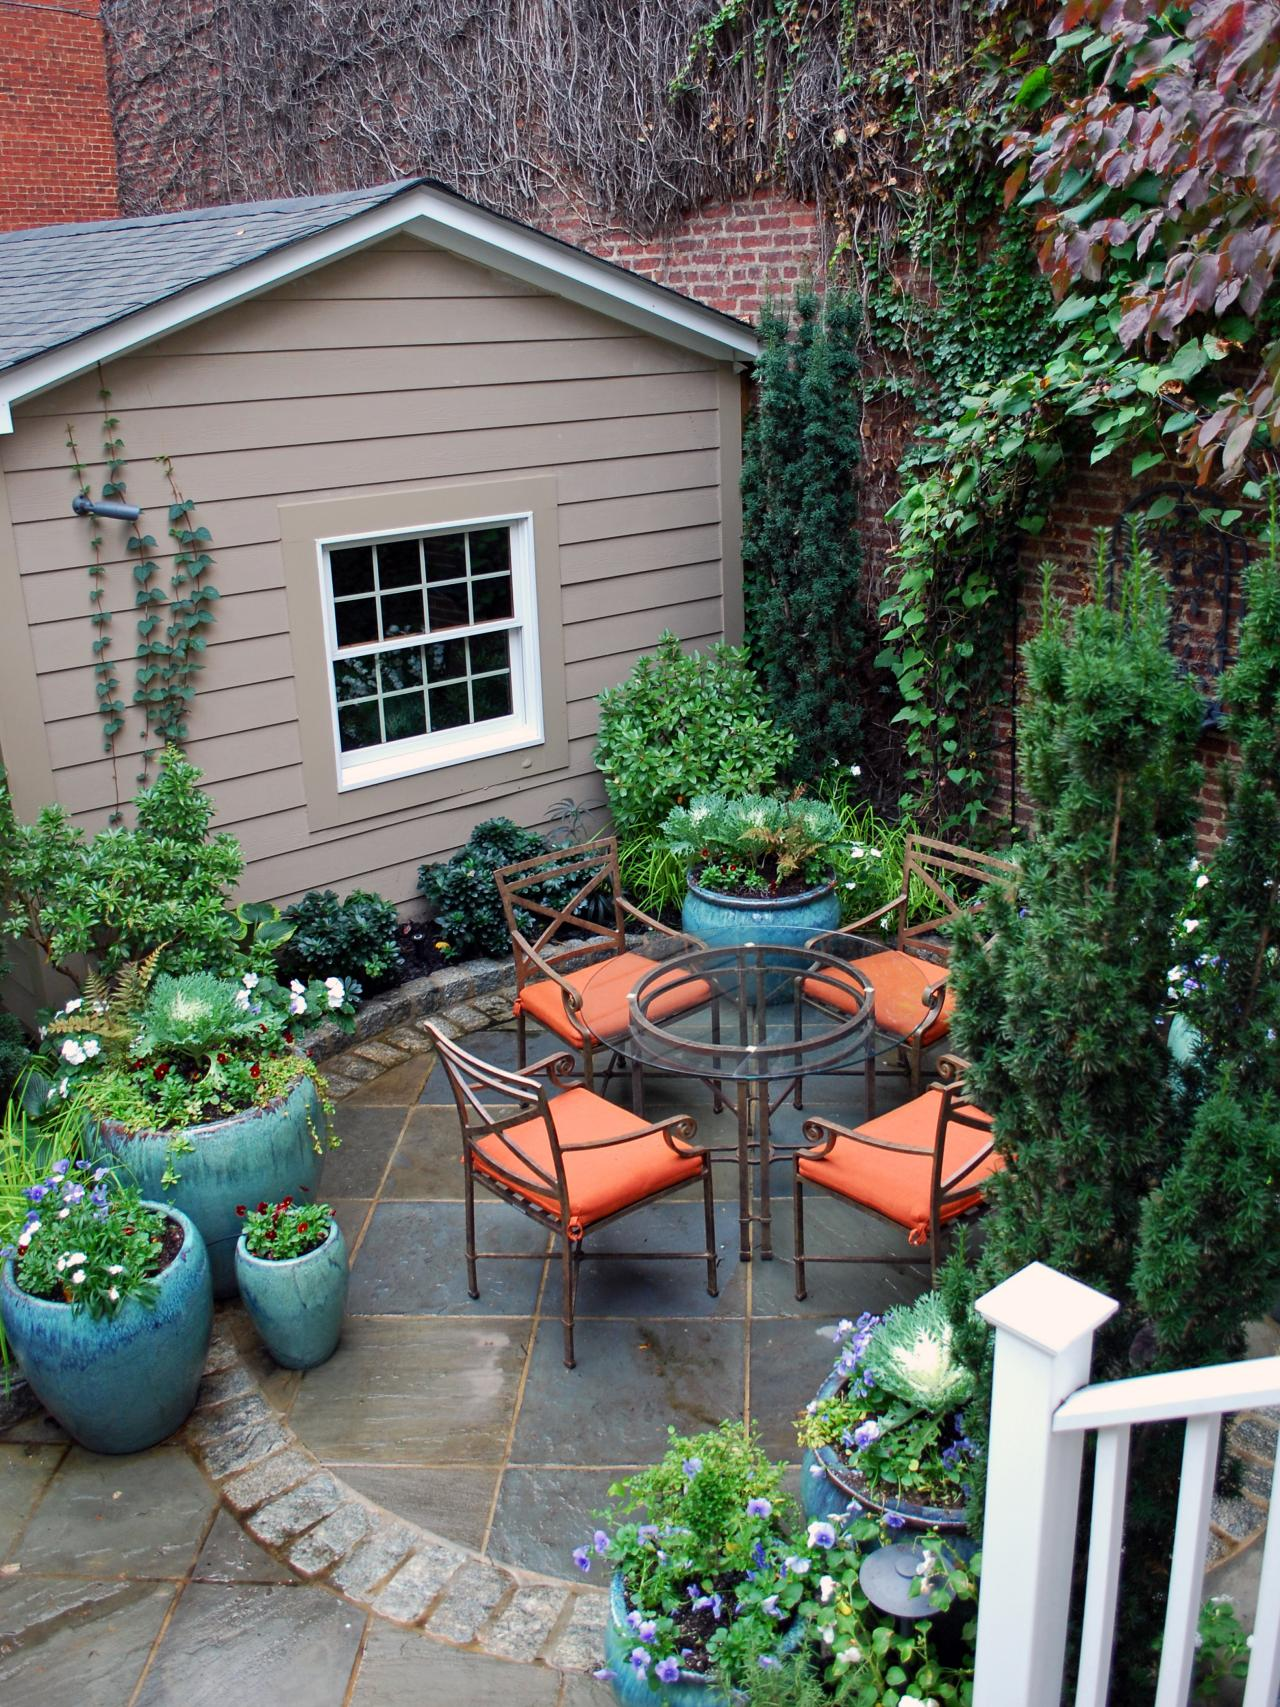 Optimize your small outdoor space hgtv Outdoor patio ideas for small spaces